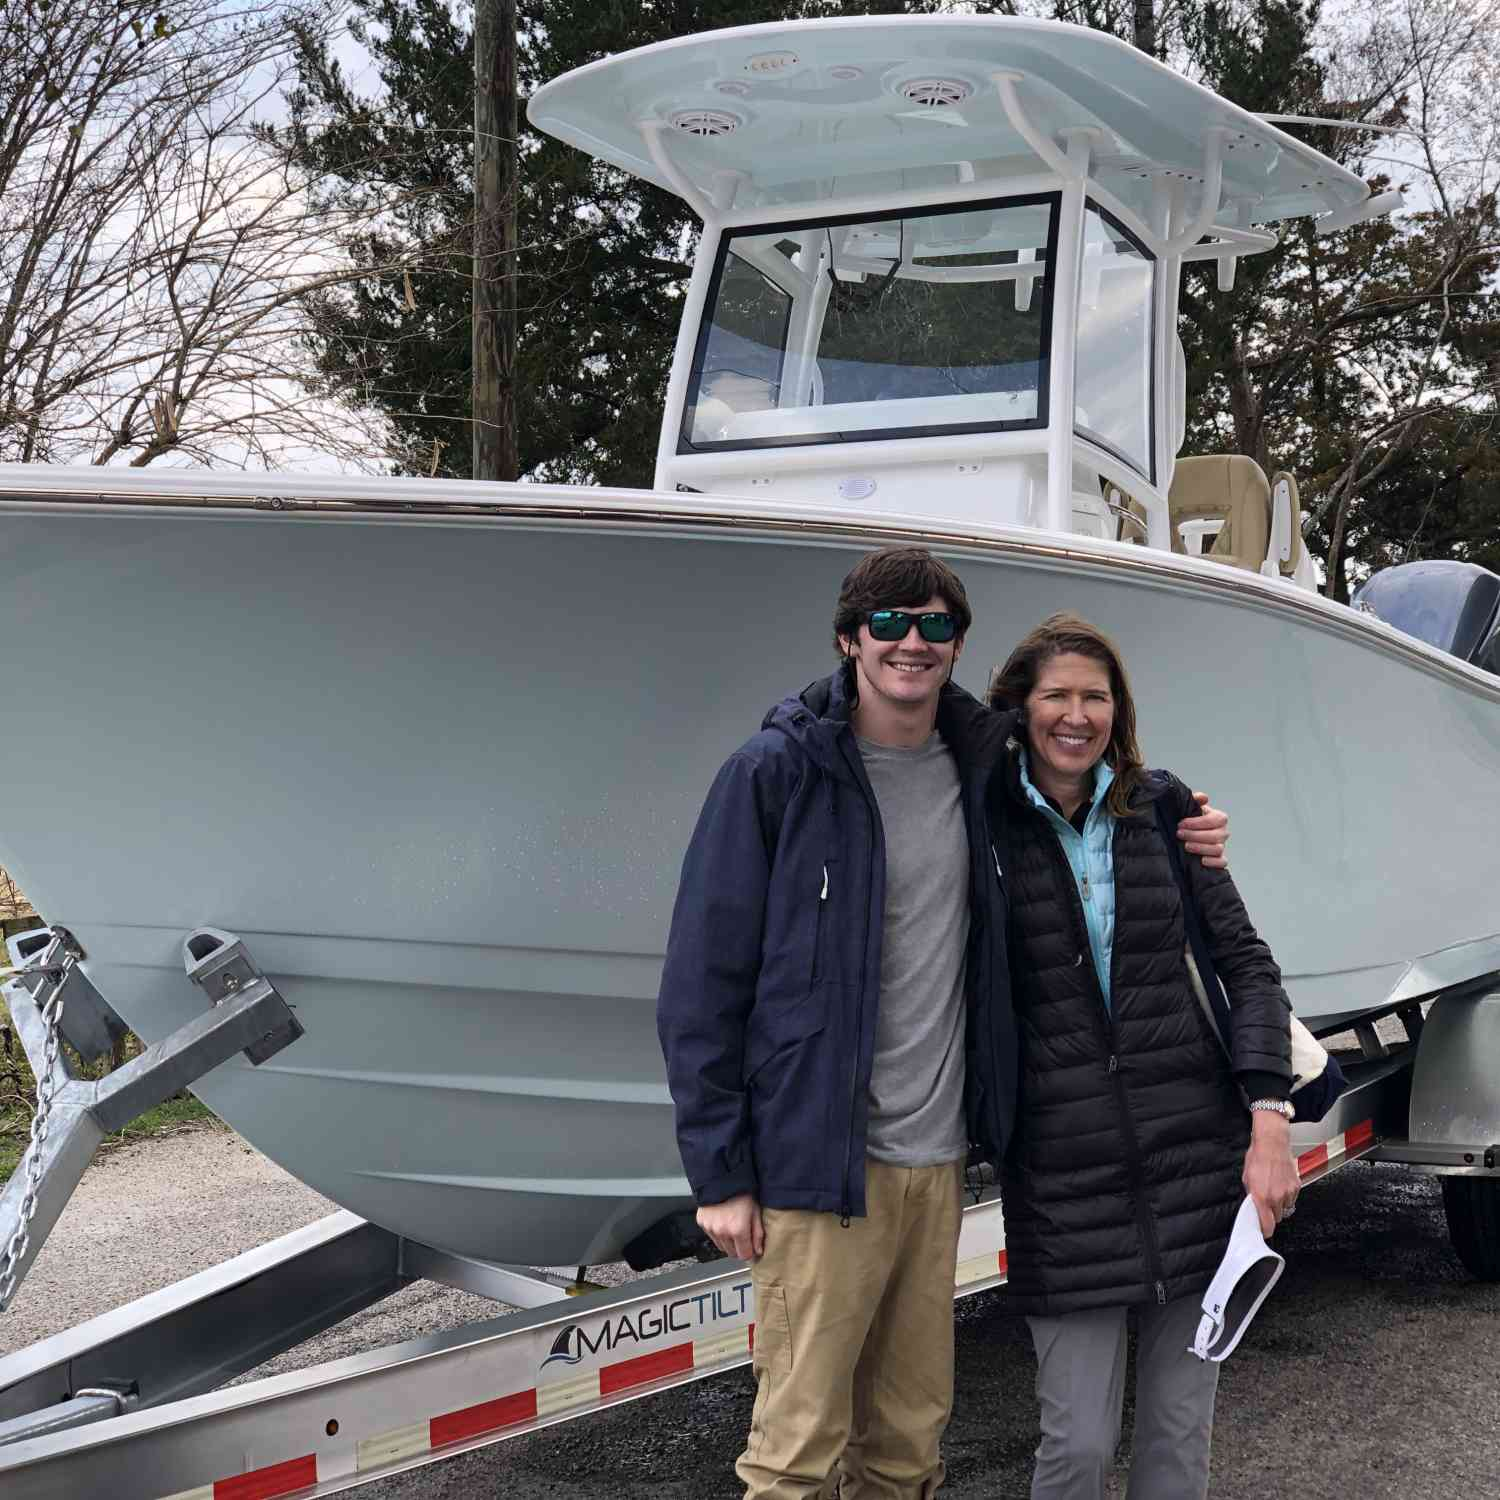 Title: New Adventure 2021 - On board their Sportsman Open 282 Center Console - Location: Little River SC. Participating in the Photo Contest #SportsmanMay2021